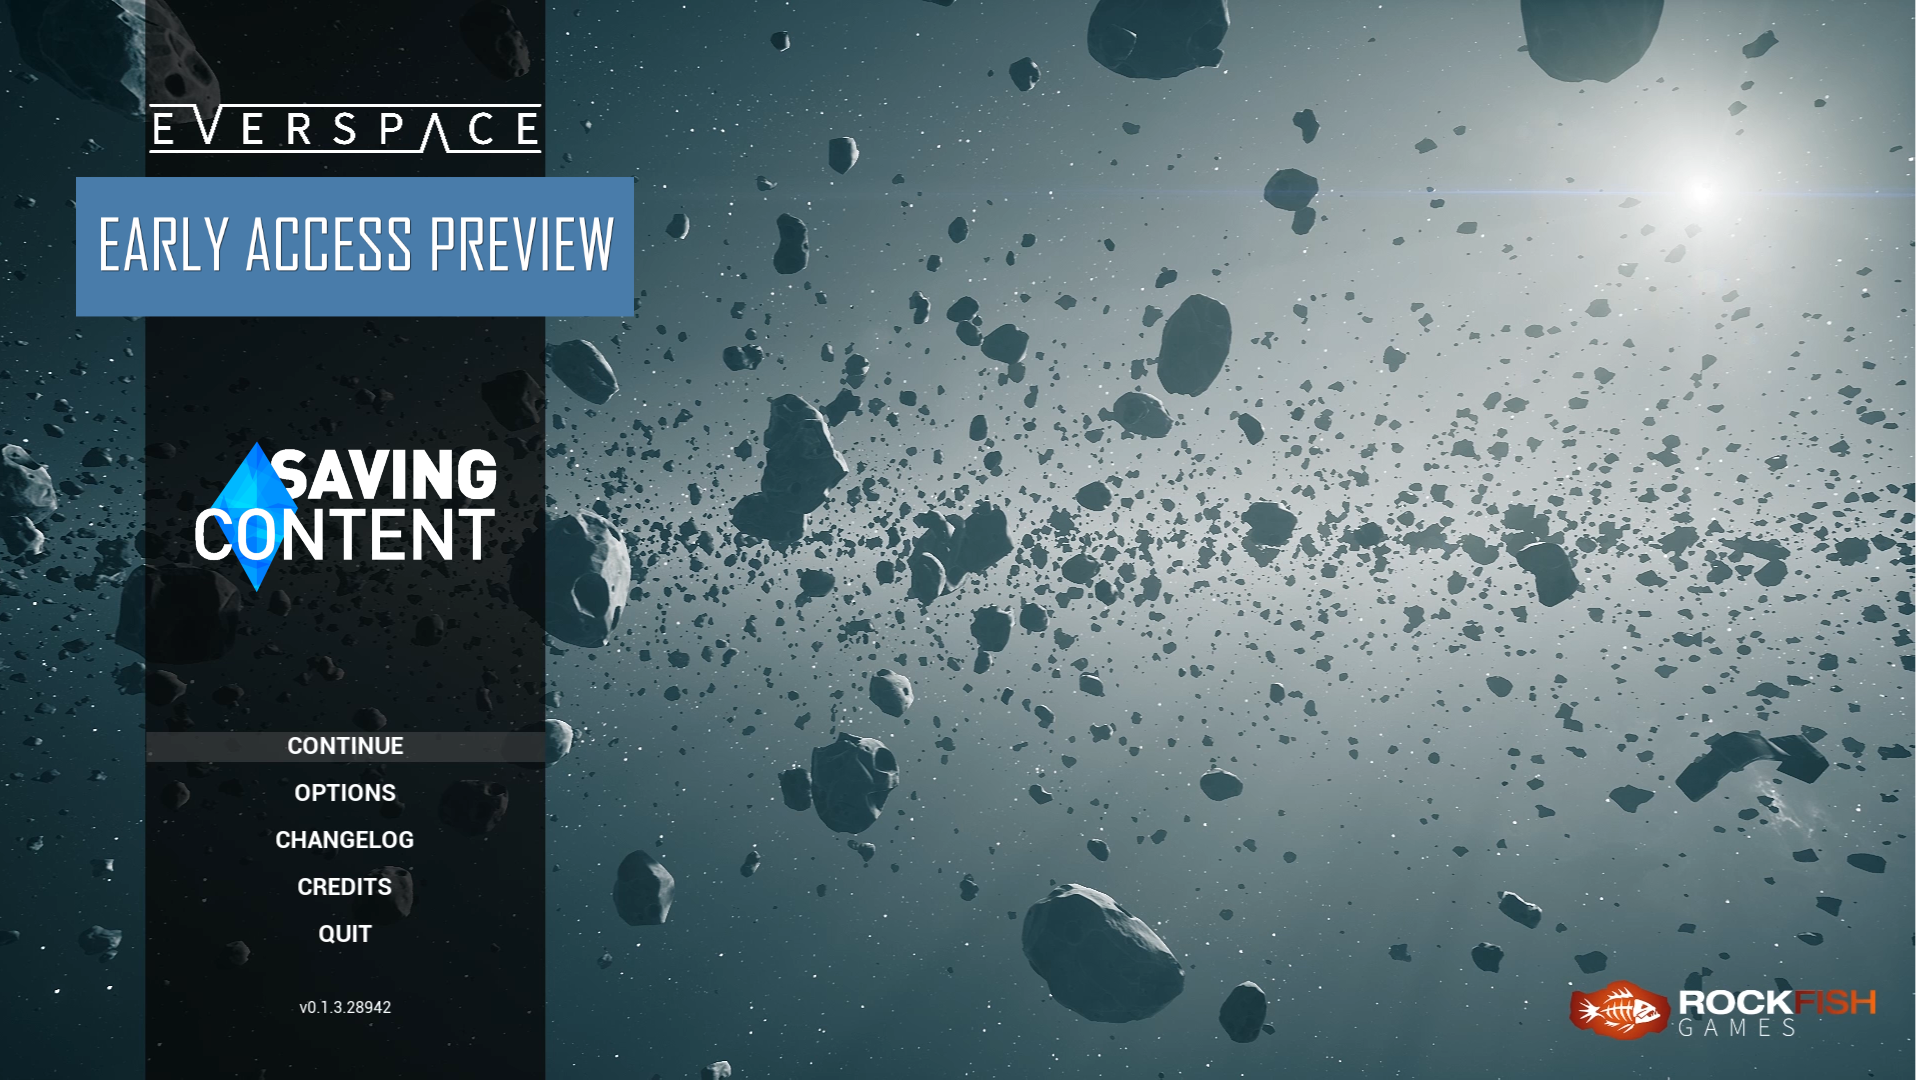 Everspace earlyaccesspreview thumb